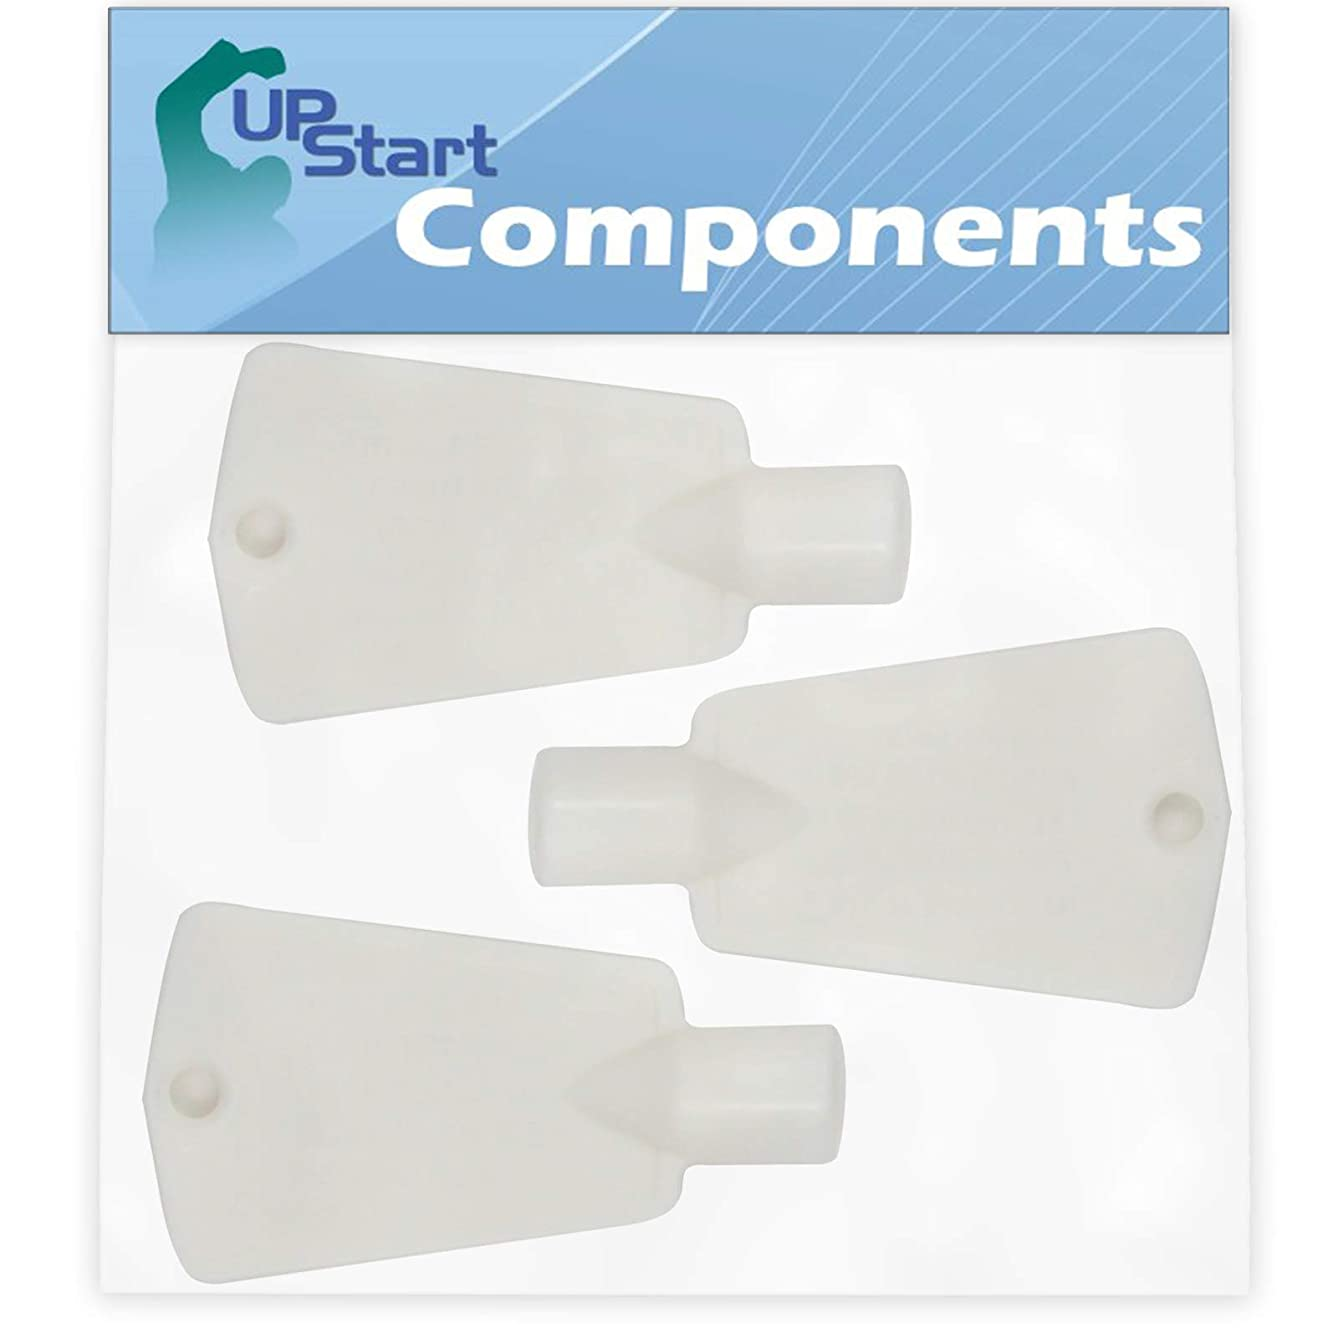 3-Pack 297147700 Freezer Door Key Replacement for Frigidaire MFC07M3BW0 Freezer - Compatible with 297147700 Lock Key - UpStart Components Brand